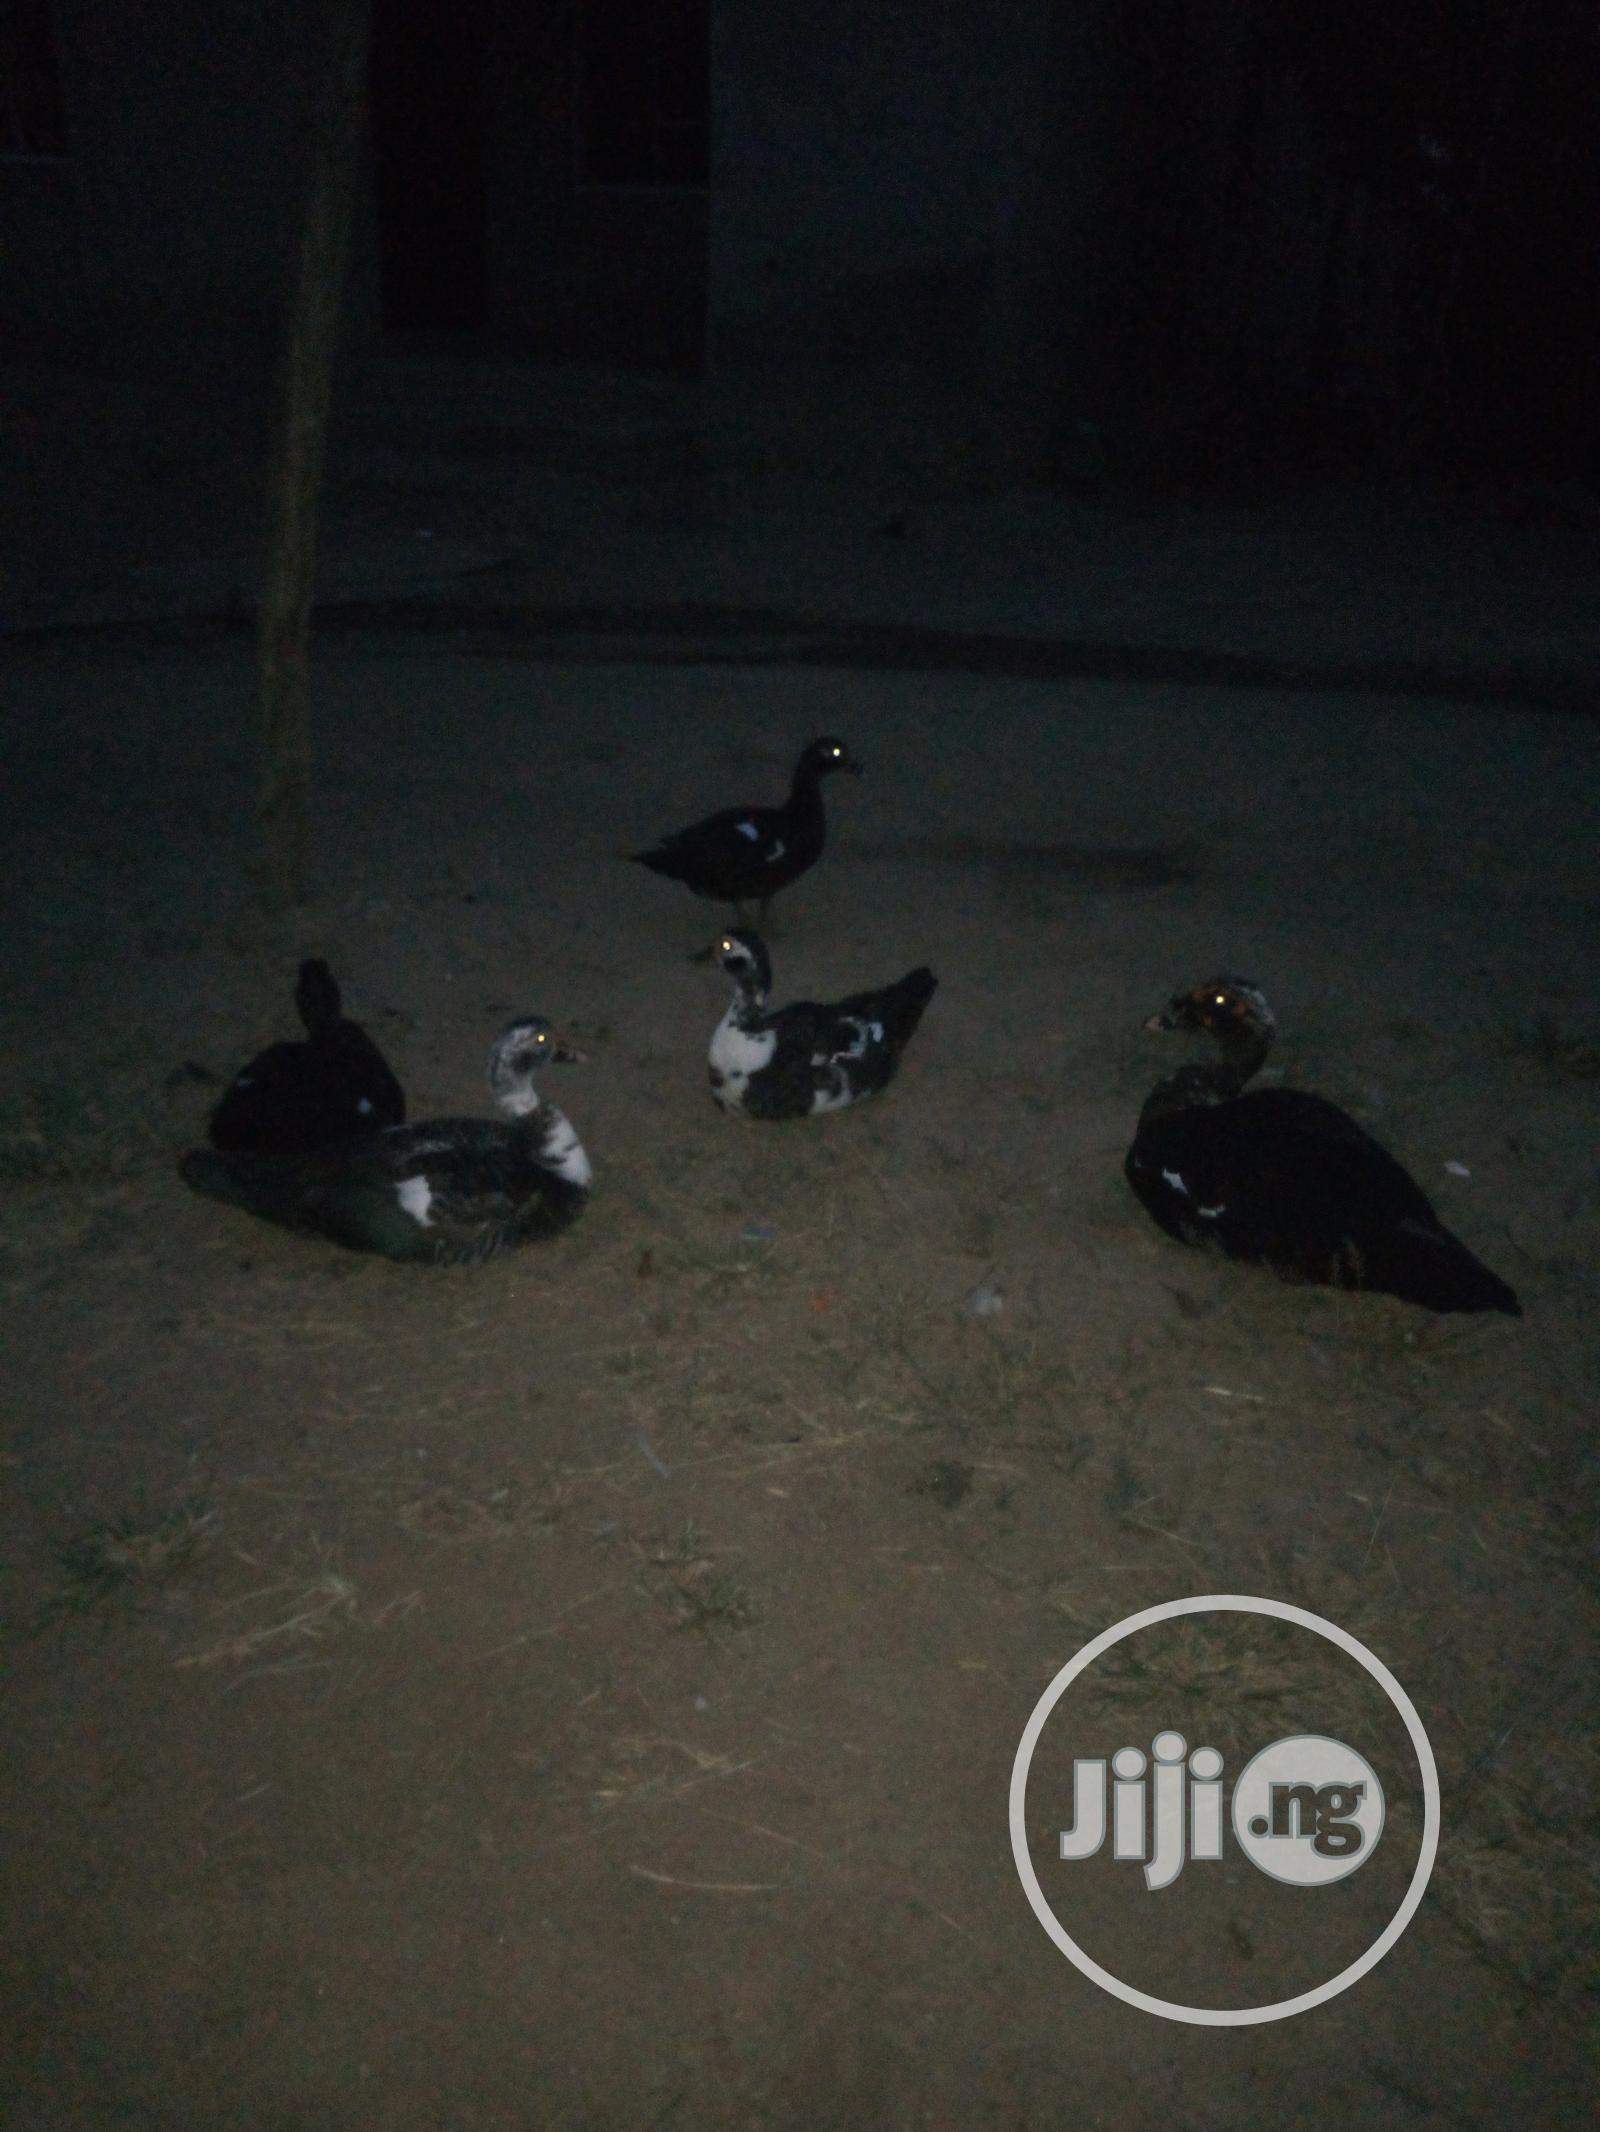 Adult Ducks For Sale | Livestock & Poultry for sale in Odeda, Ogun State, Nigeria